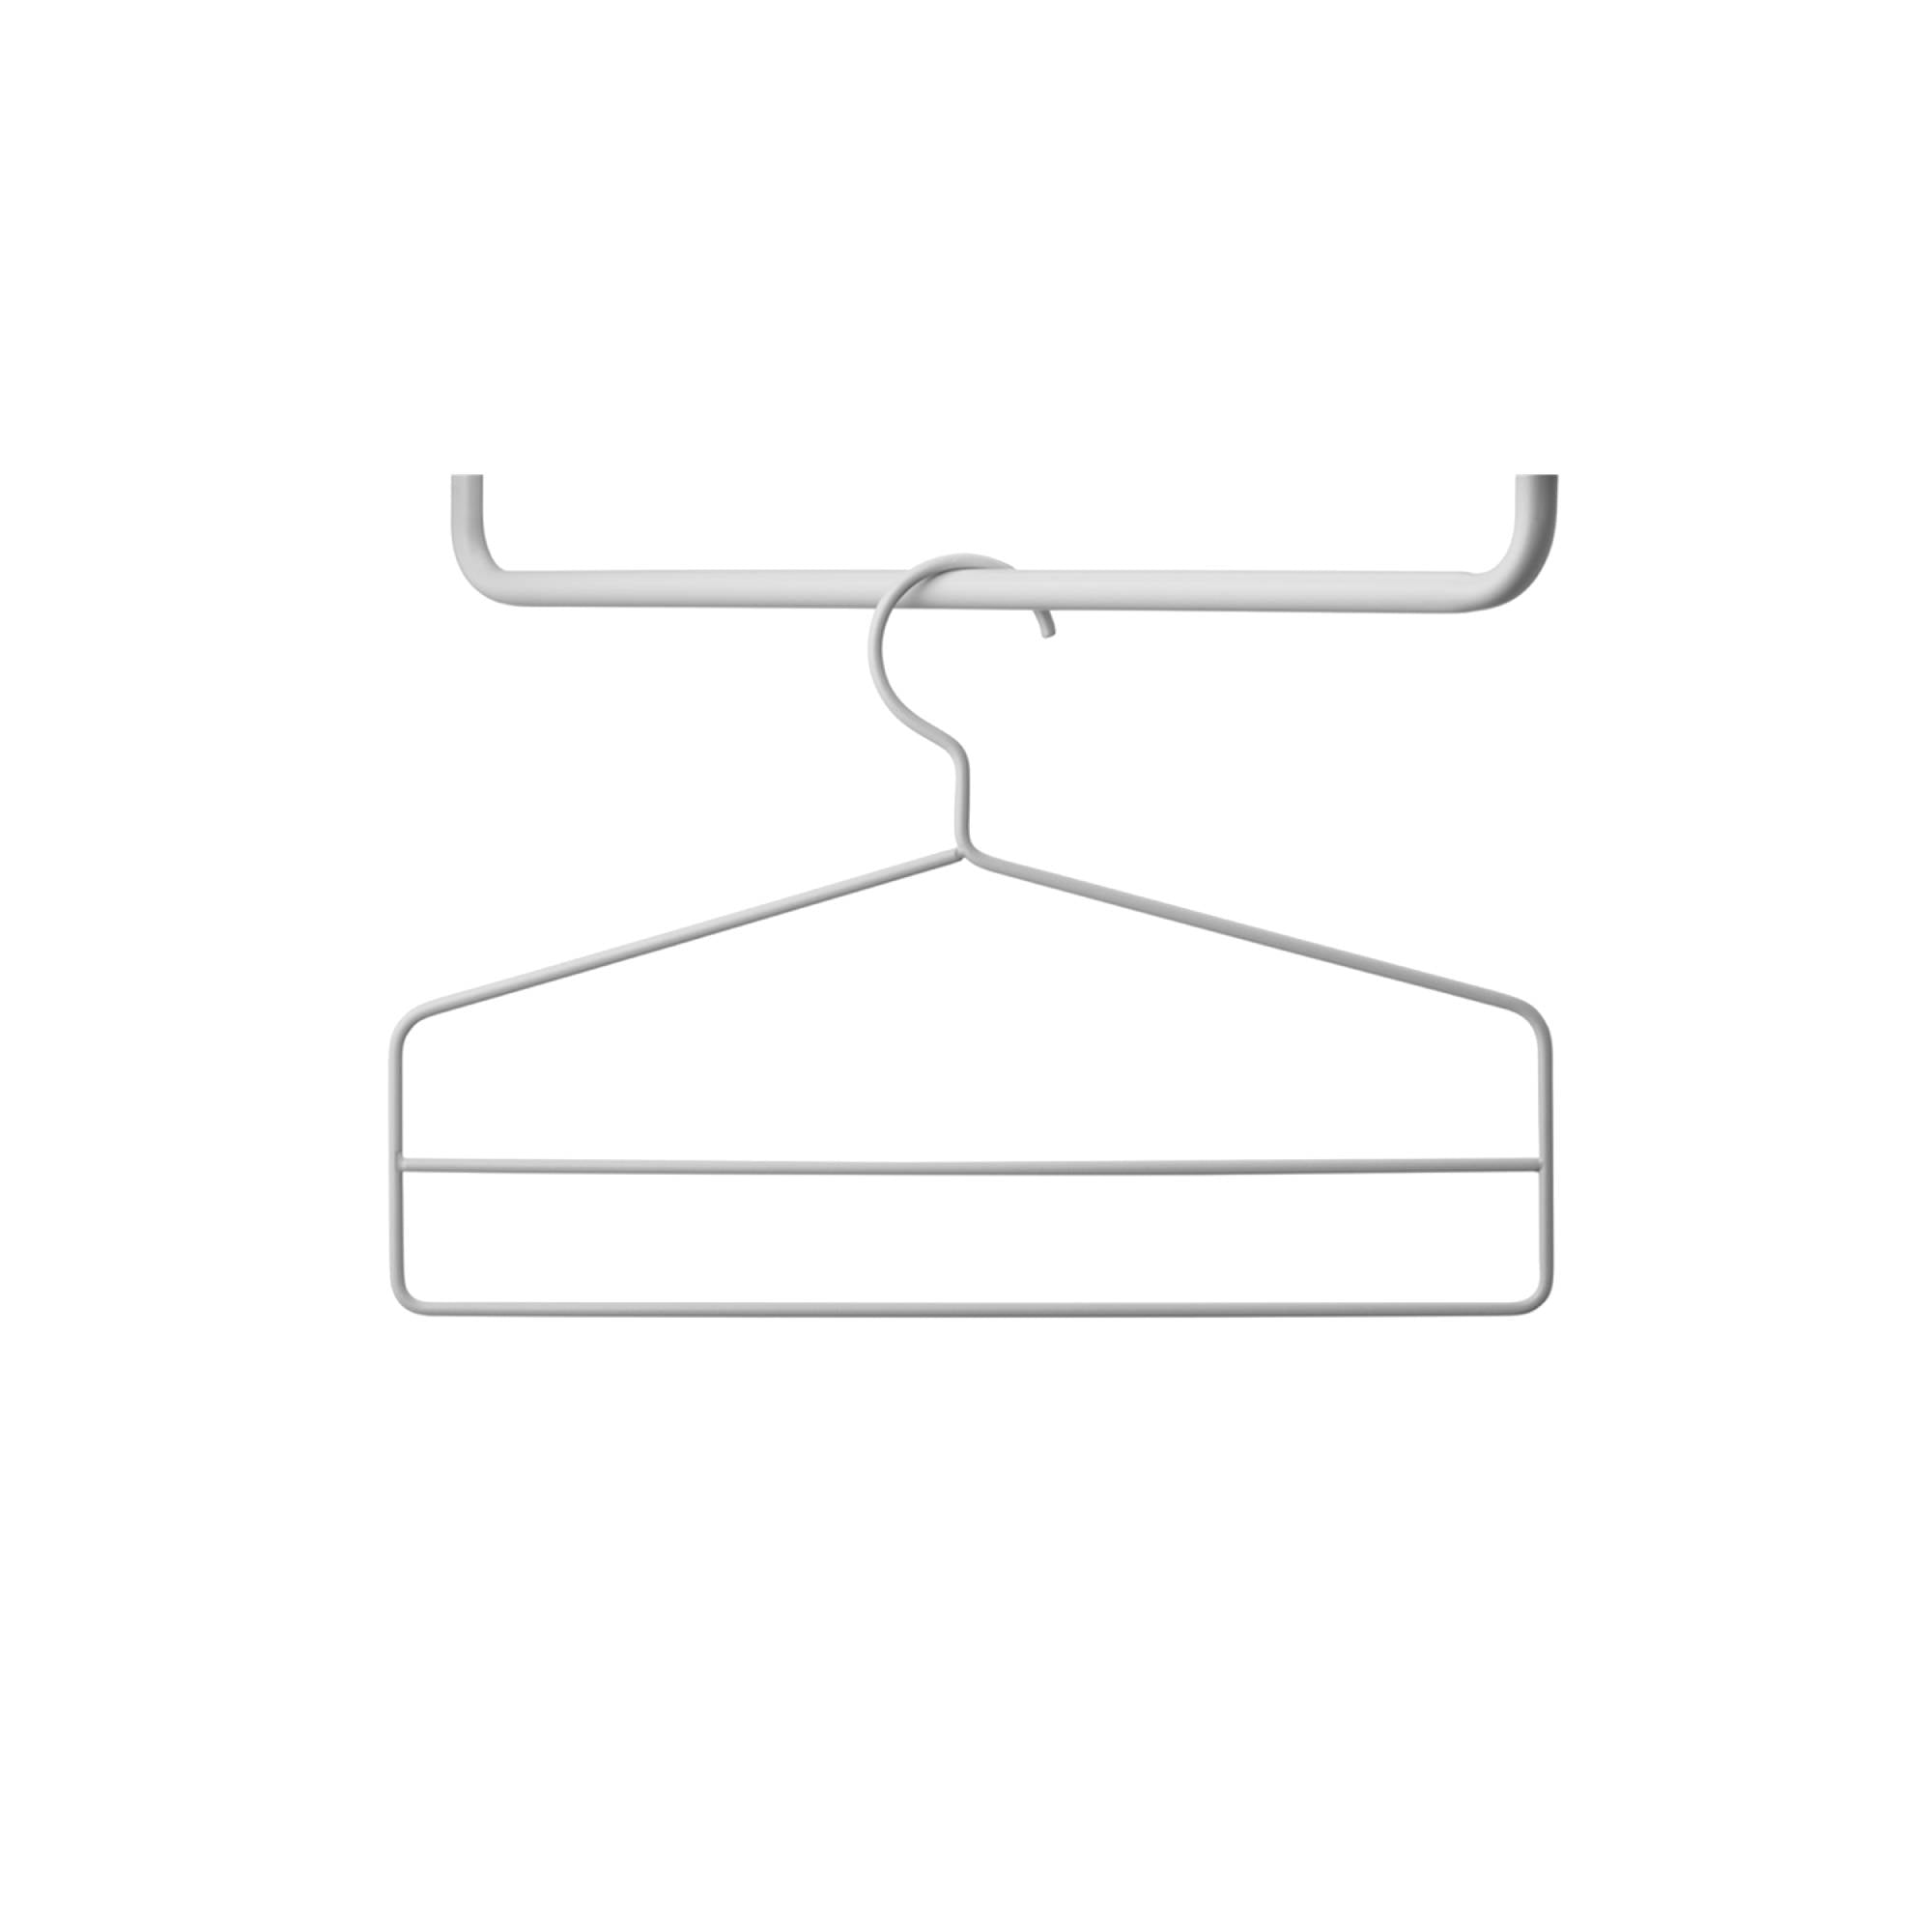 String System: String+ Accessories + Coat Hanger (4 Pack) + Grey